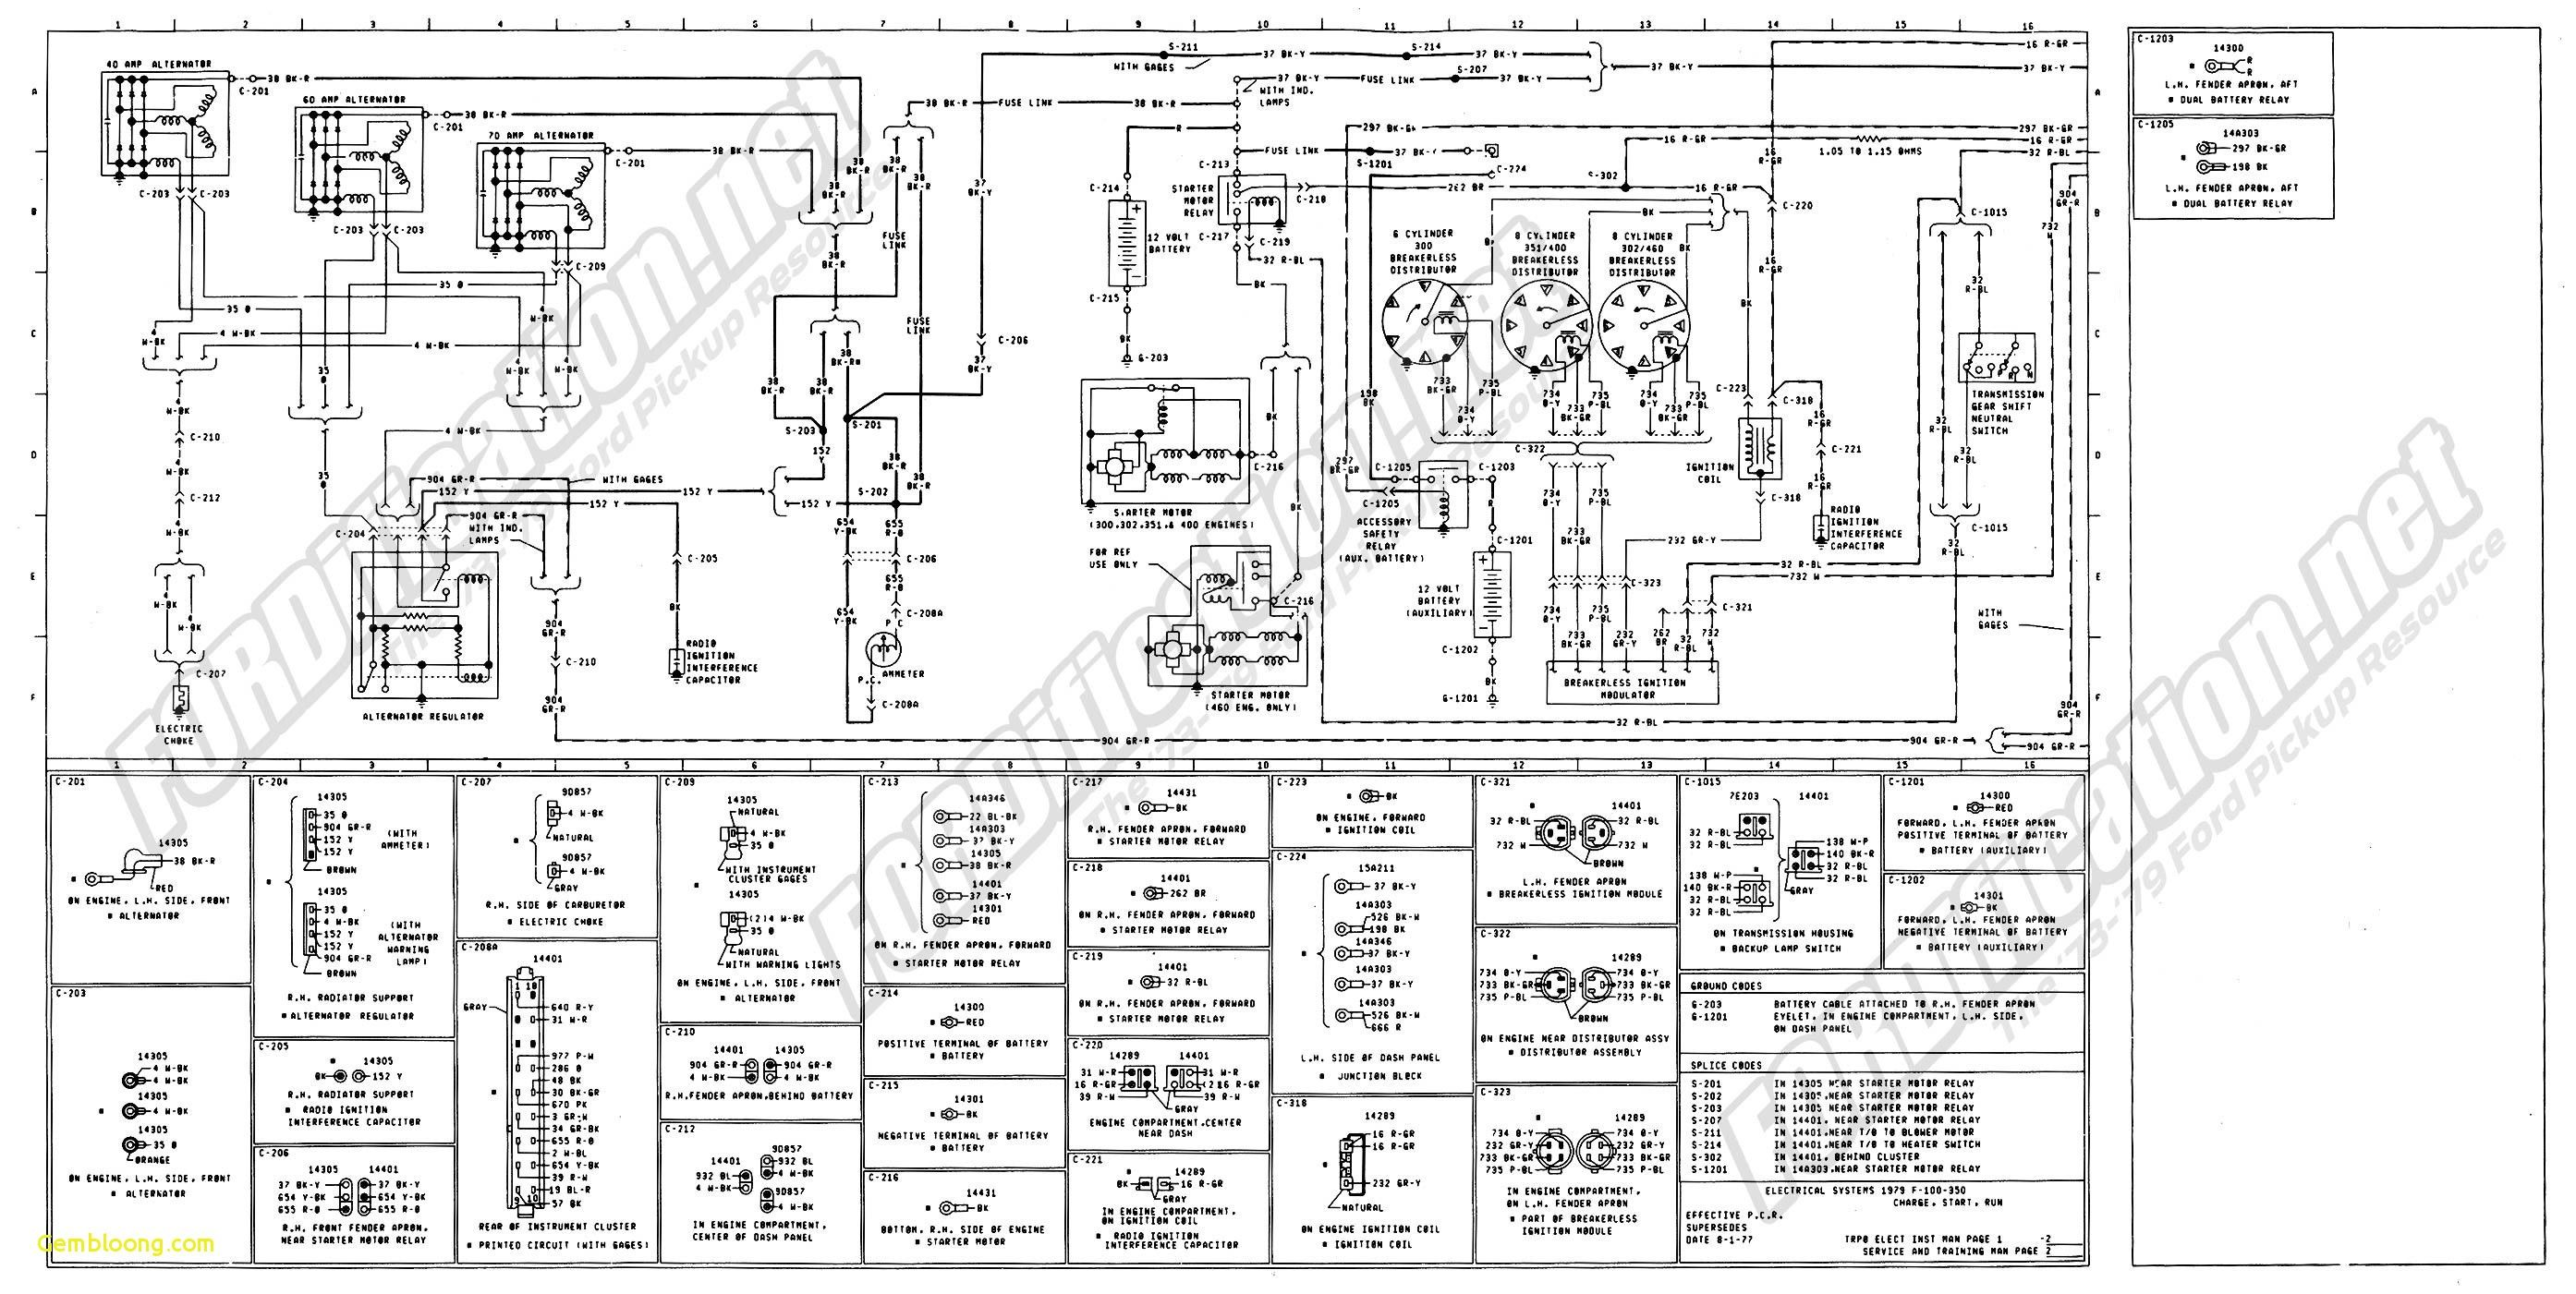 New Wiring Diagram Voltmeter Car